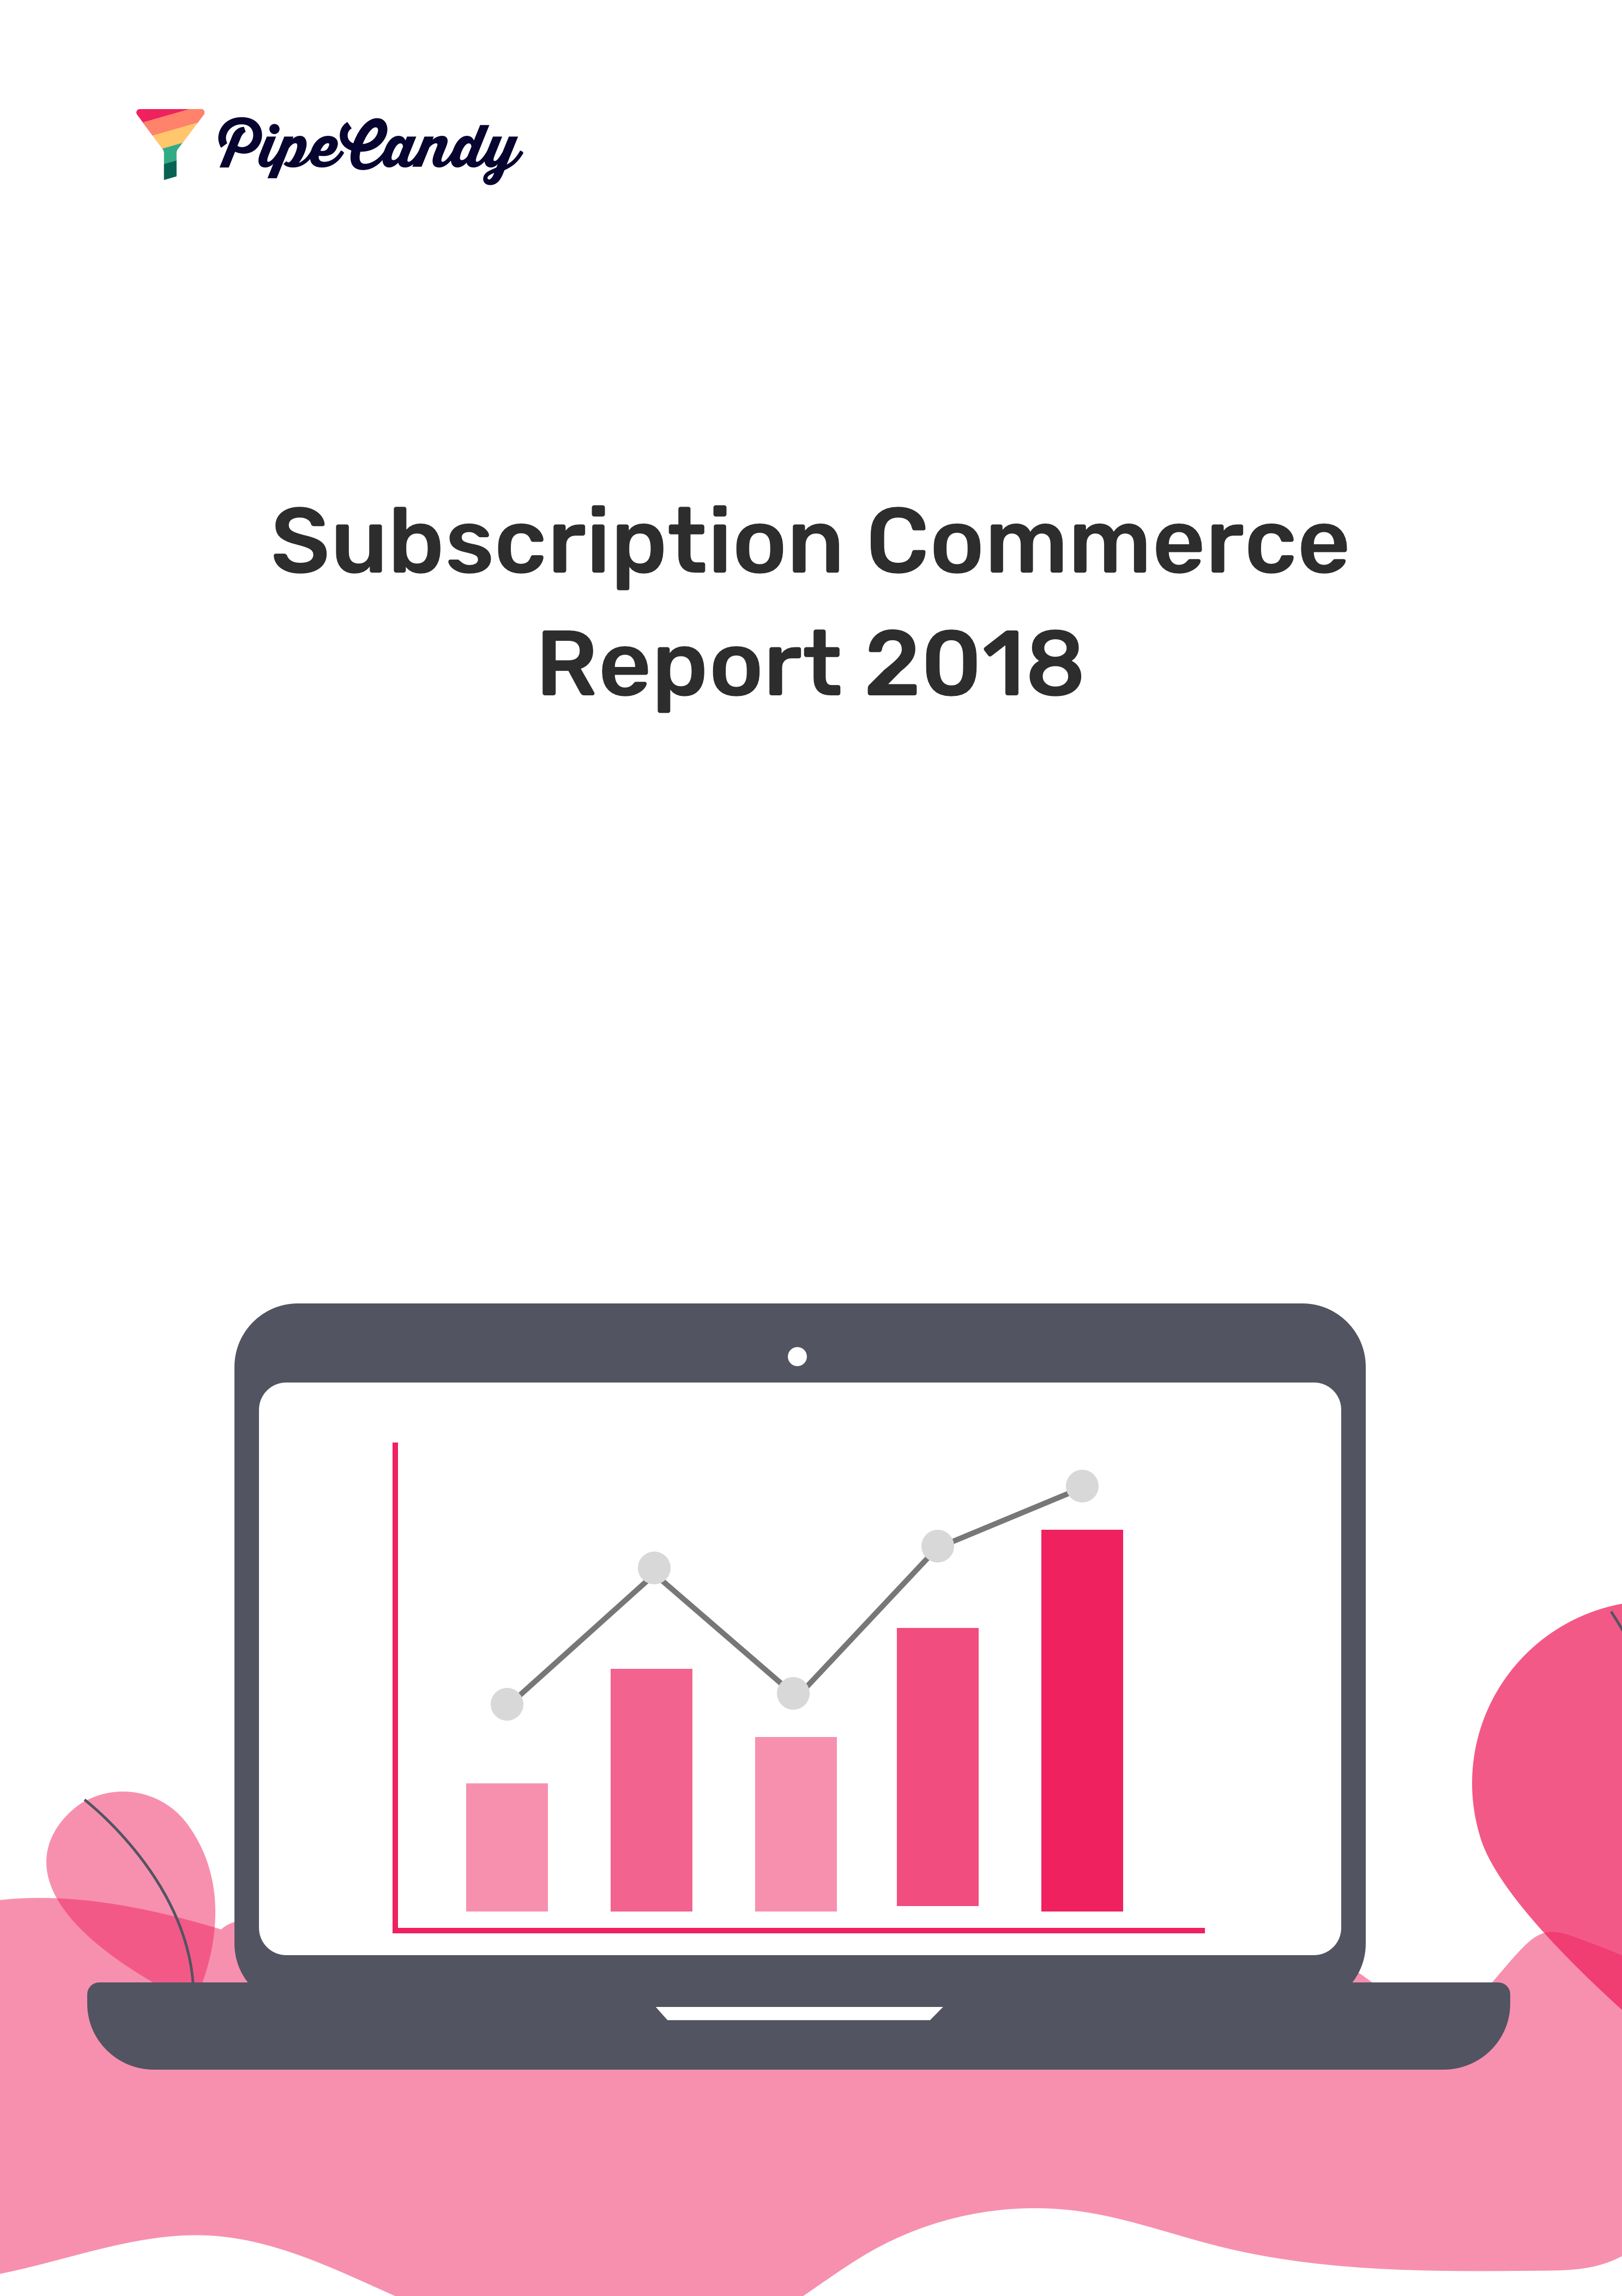 Subscription Box eCommerce Market Study Report